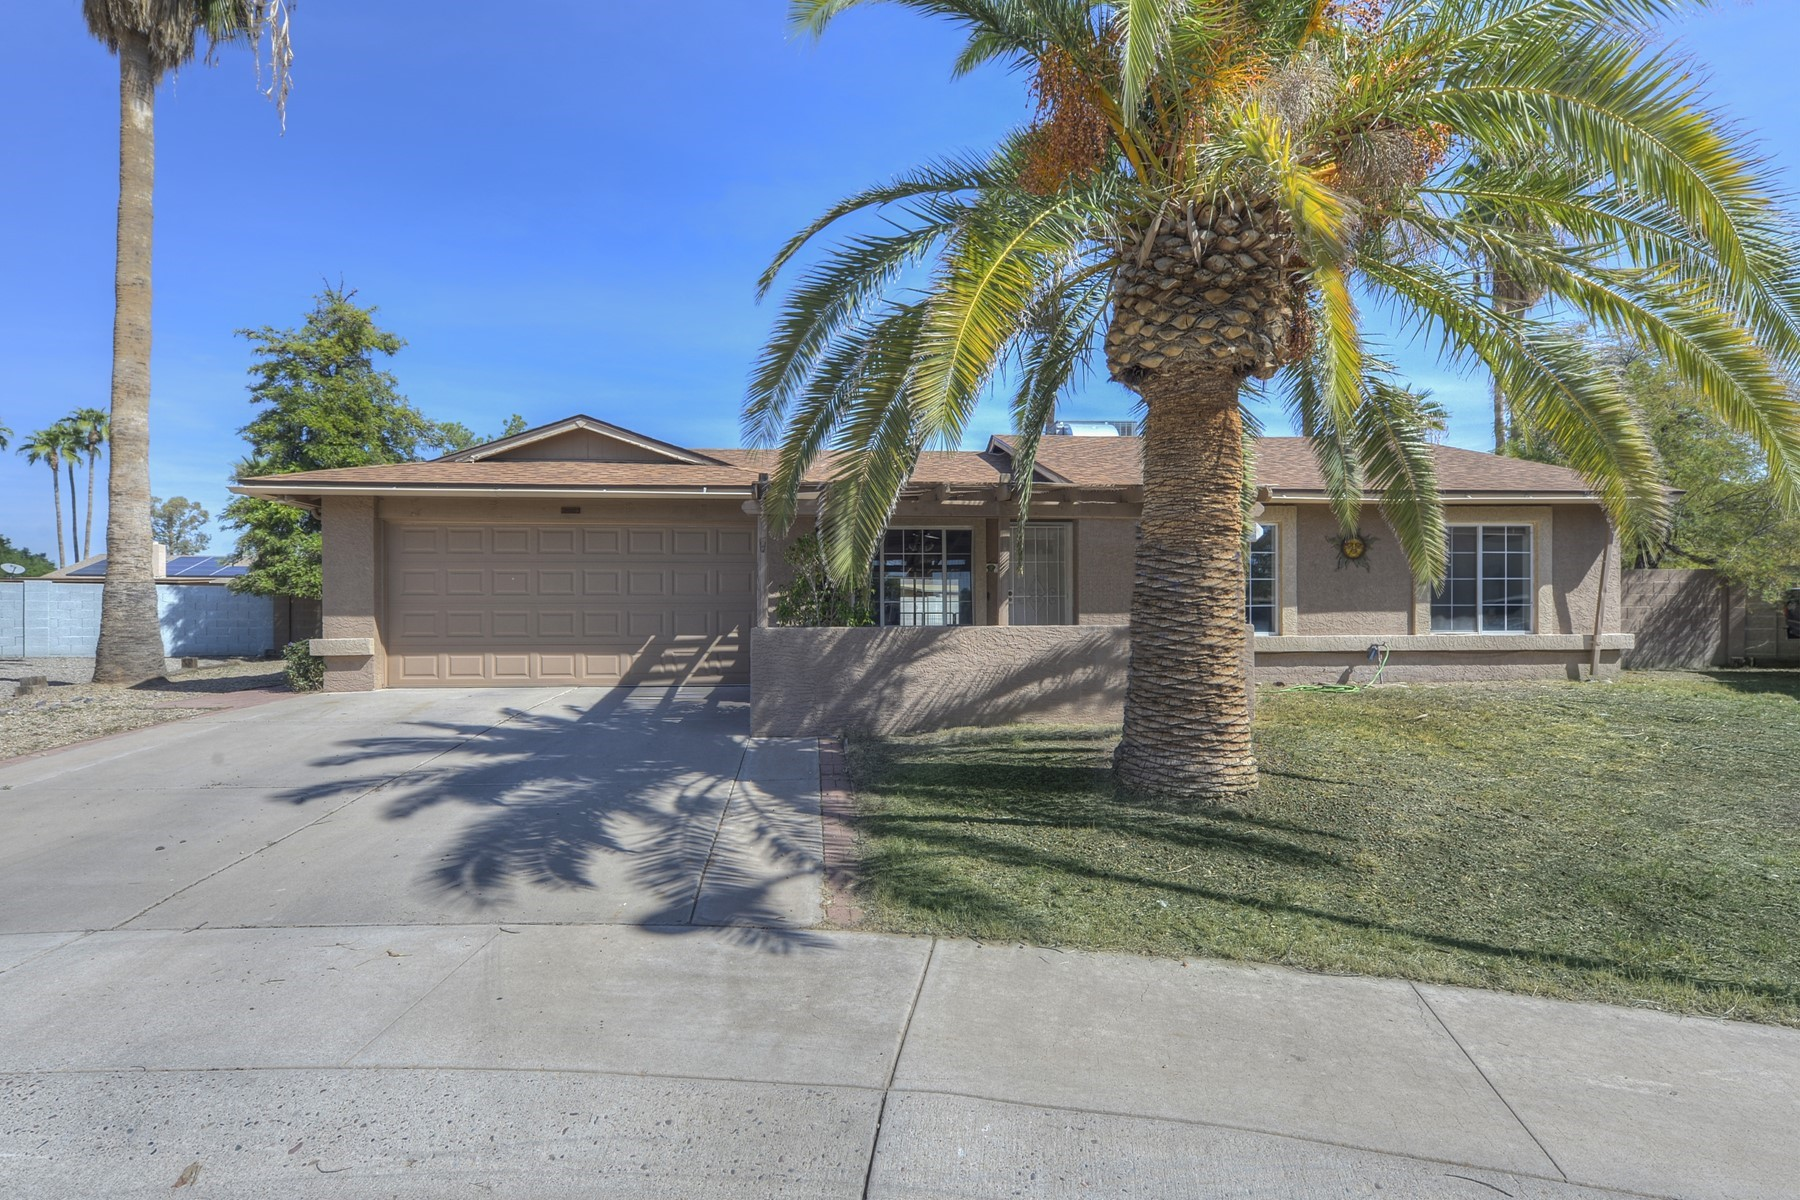 Single Family Homes for Sale at Orangetree 2212 West Colt Road Chandler, Arizona 85224 United States